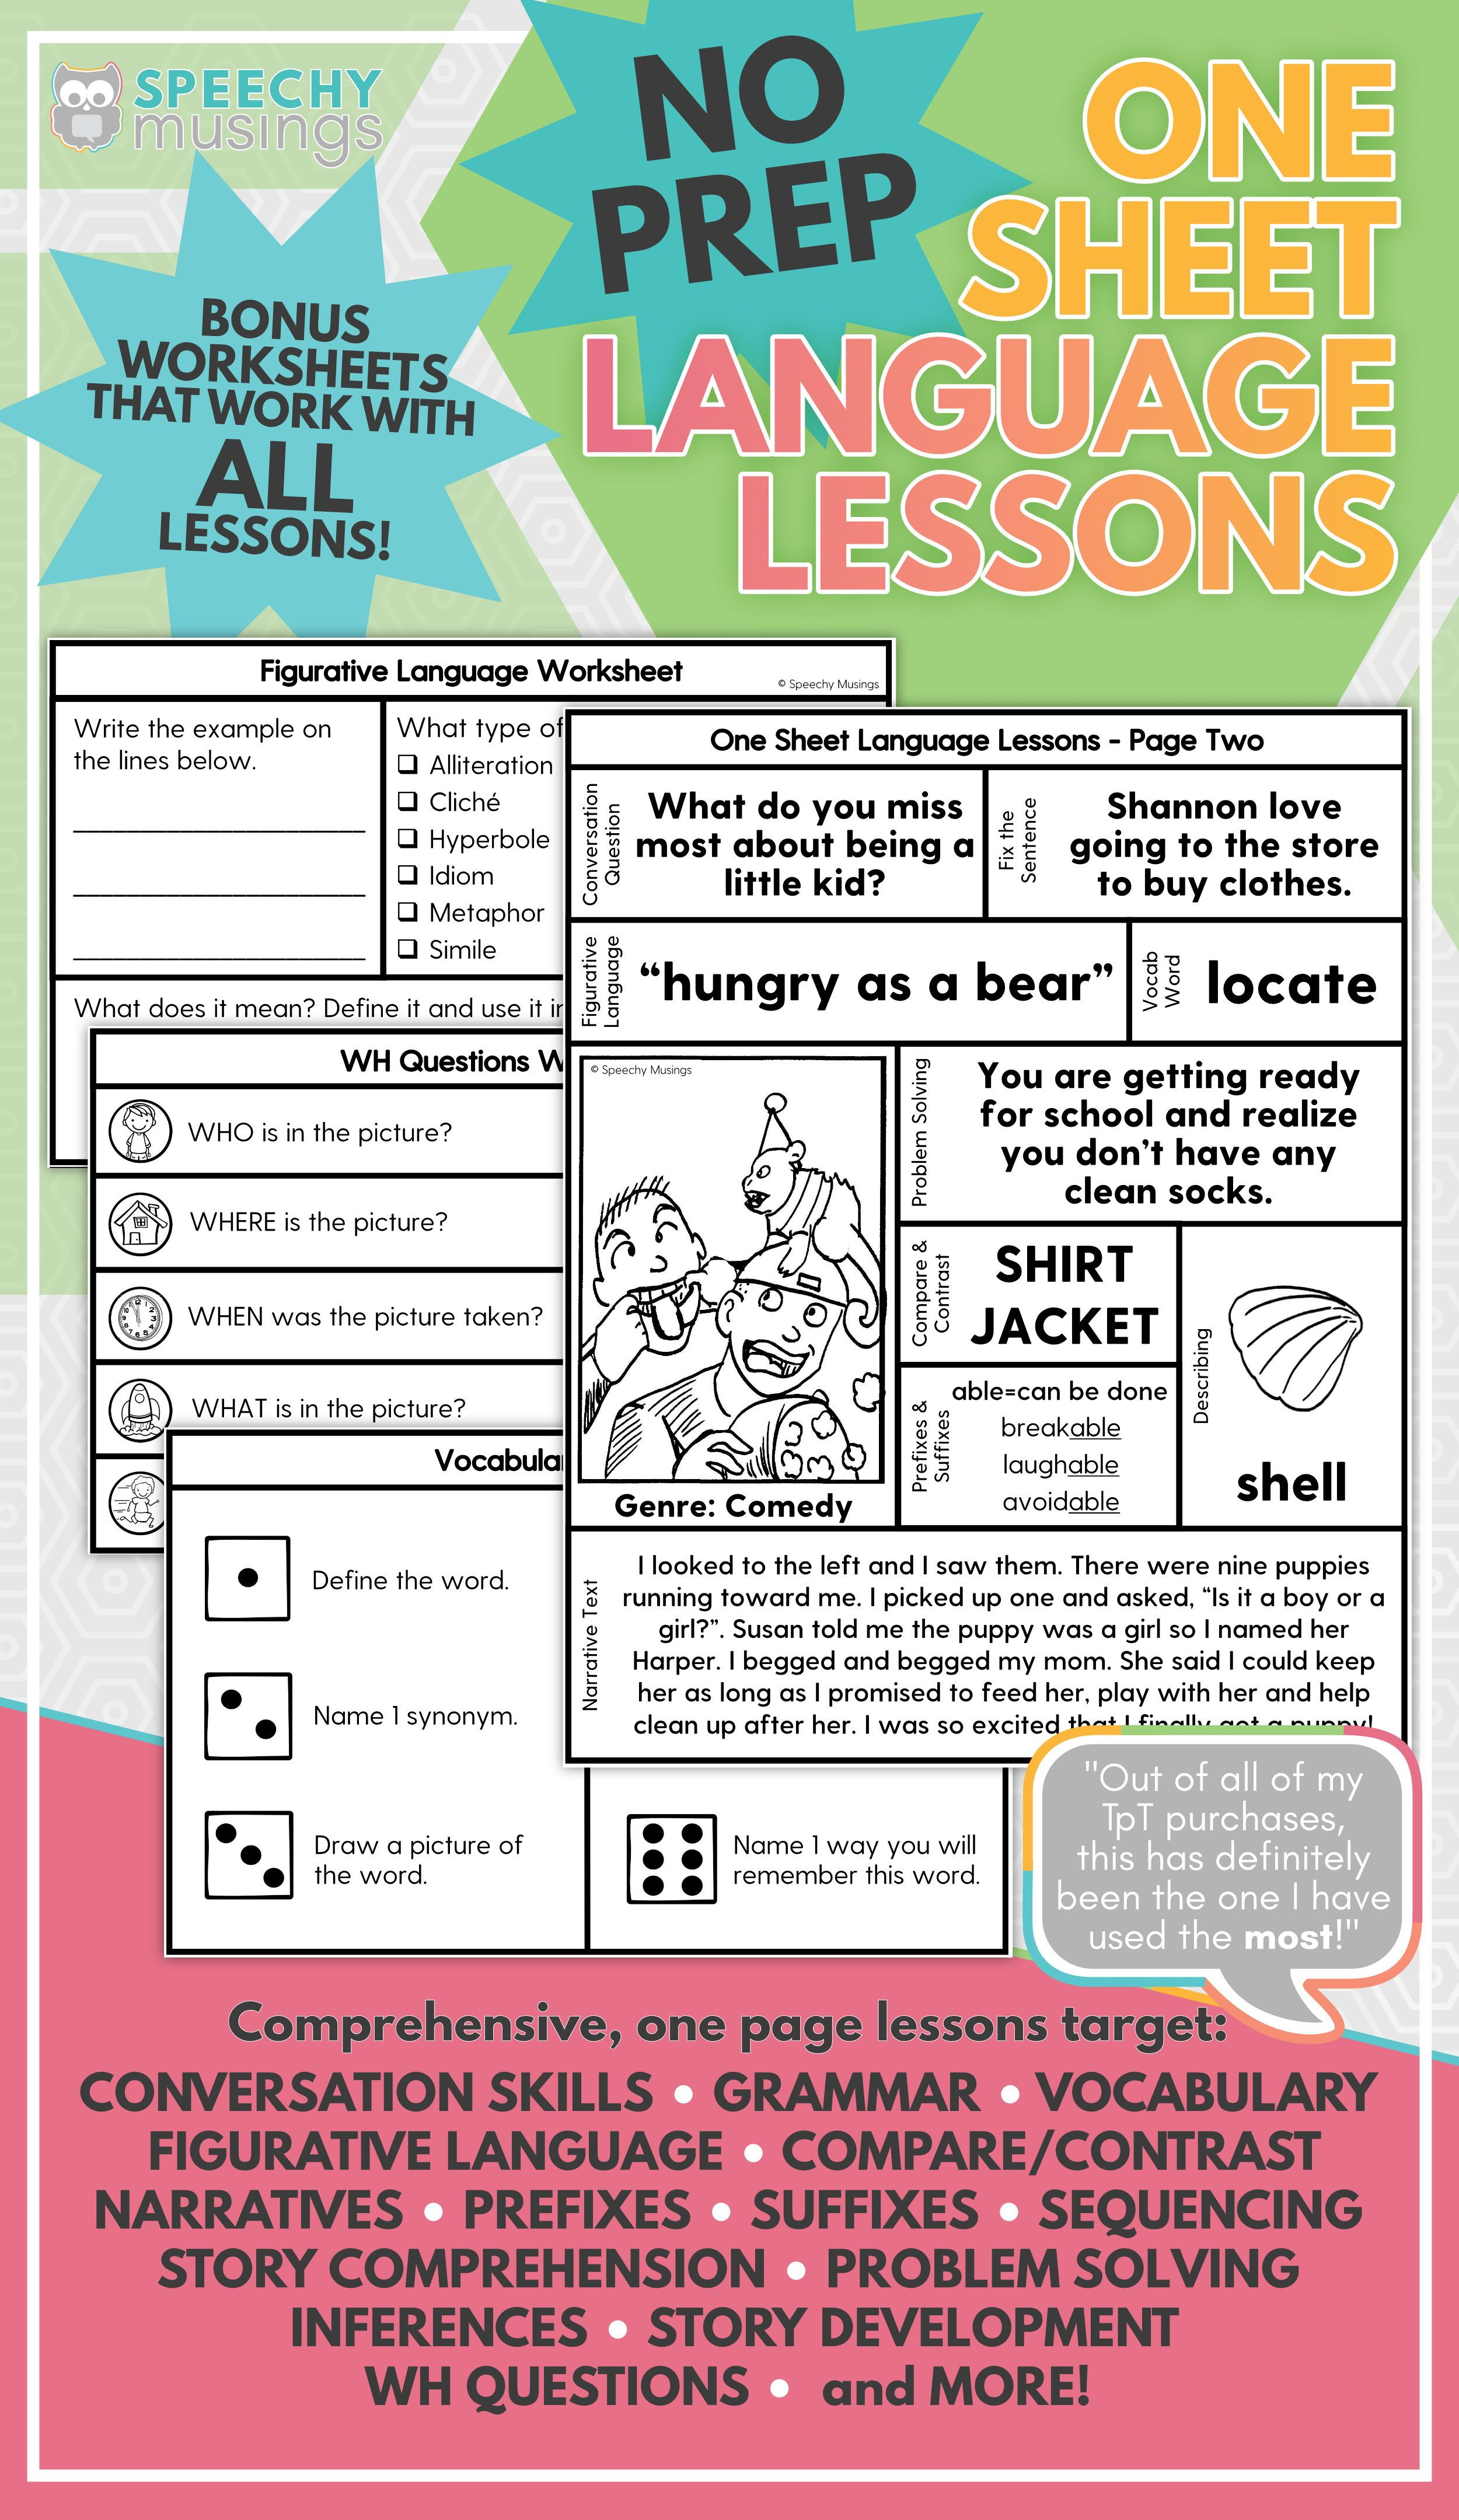 Are You Overwhelmed Coming Up With Lesson Ideas Every Week